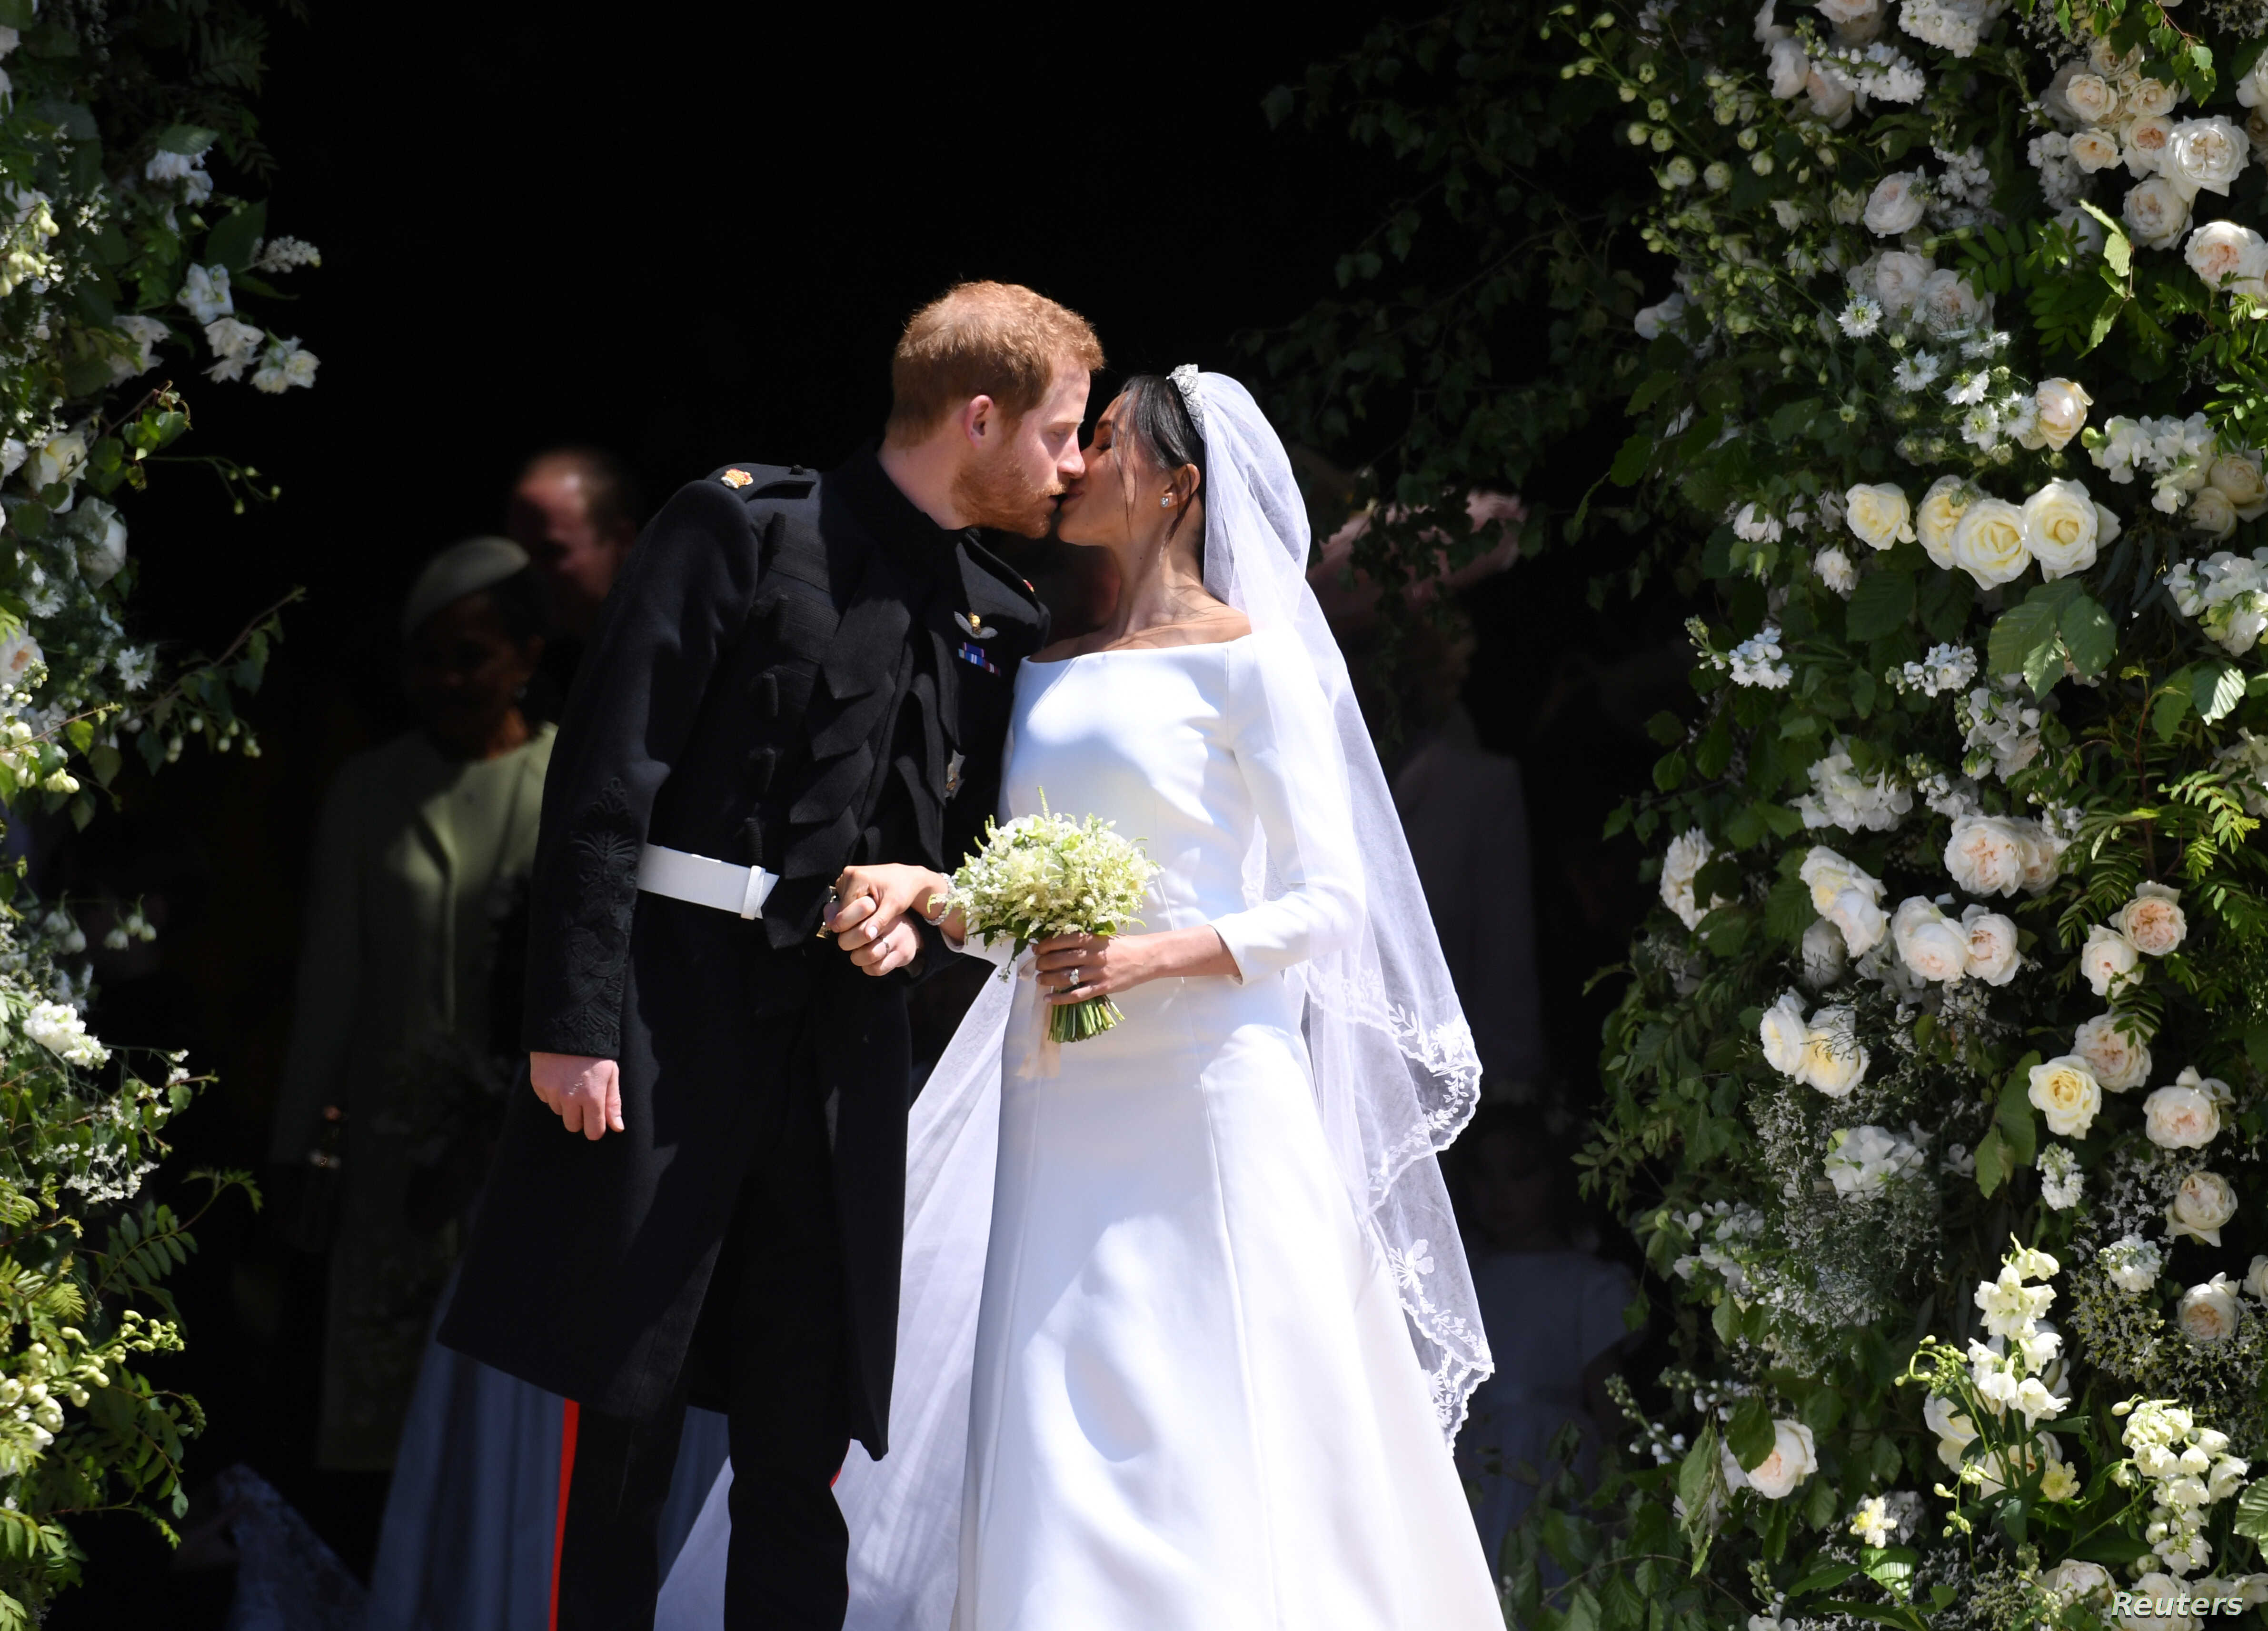 meghan s wedding gown on exhibit at windsor castle voice of america english https www voanews com arts culture meghans wedding gown exhibit windsor castle